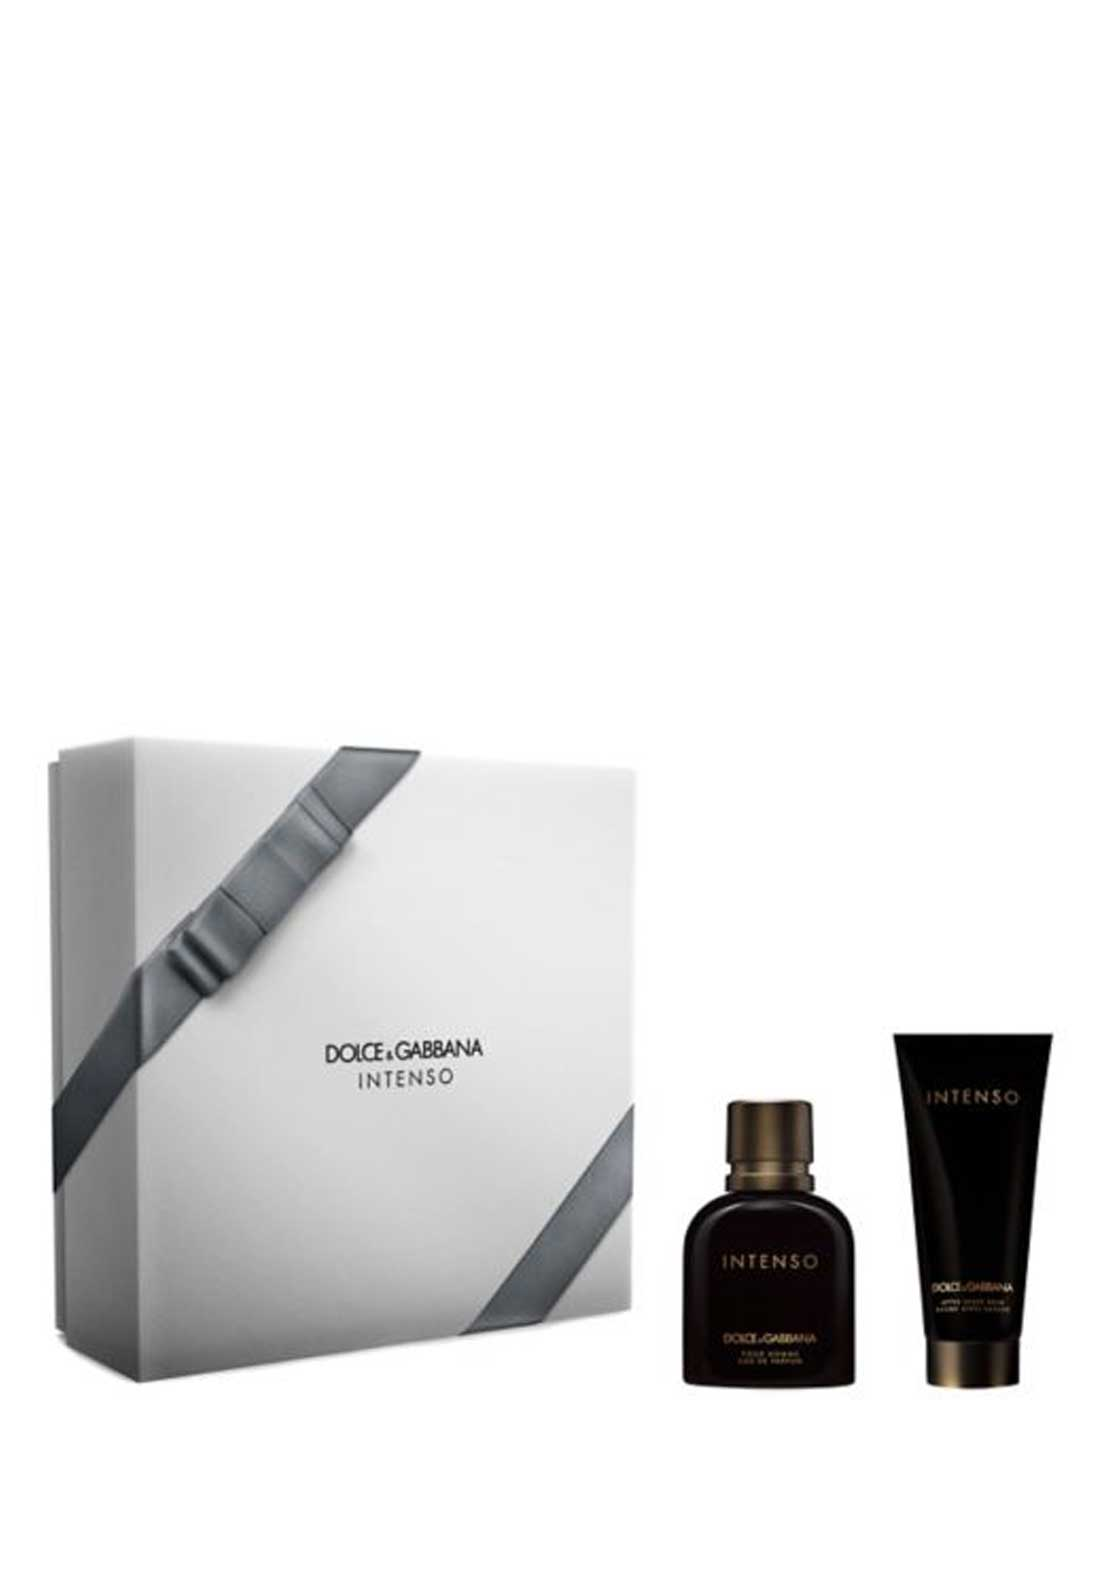 Dolce & Gabbana Intenso Gift Set, 75ml